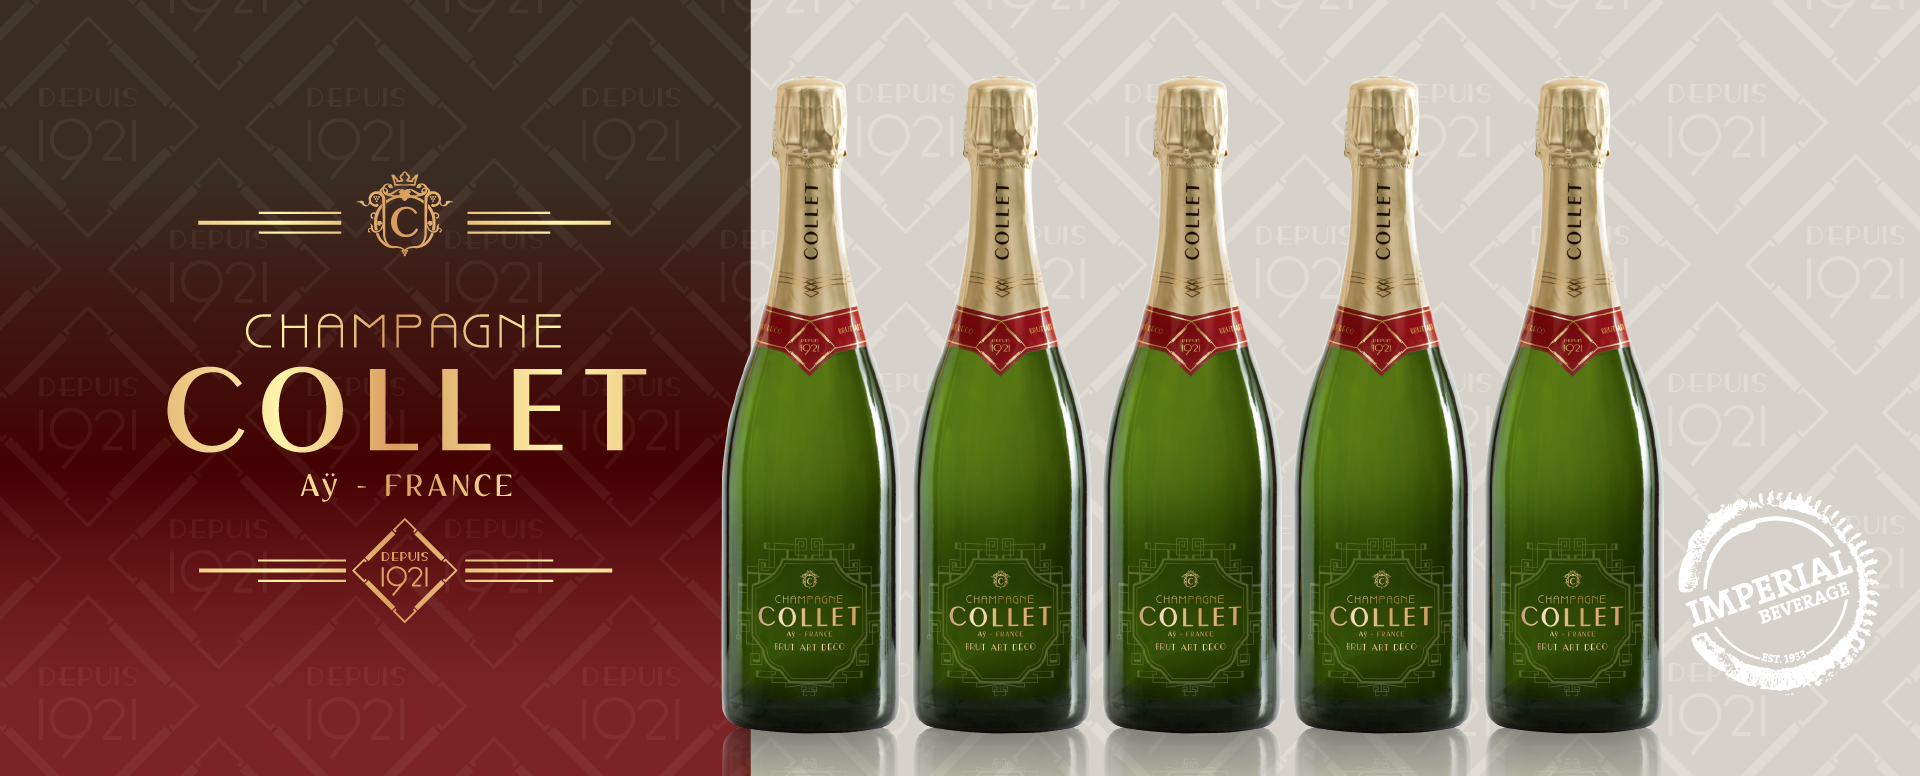 Imperial Beverage Champagne Collet